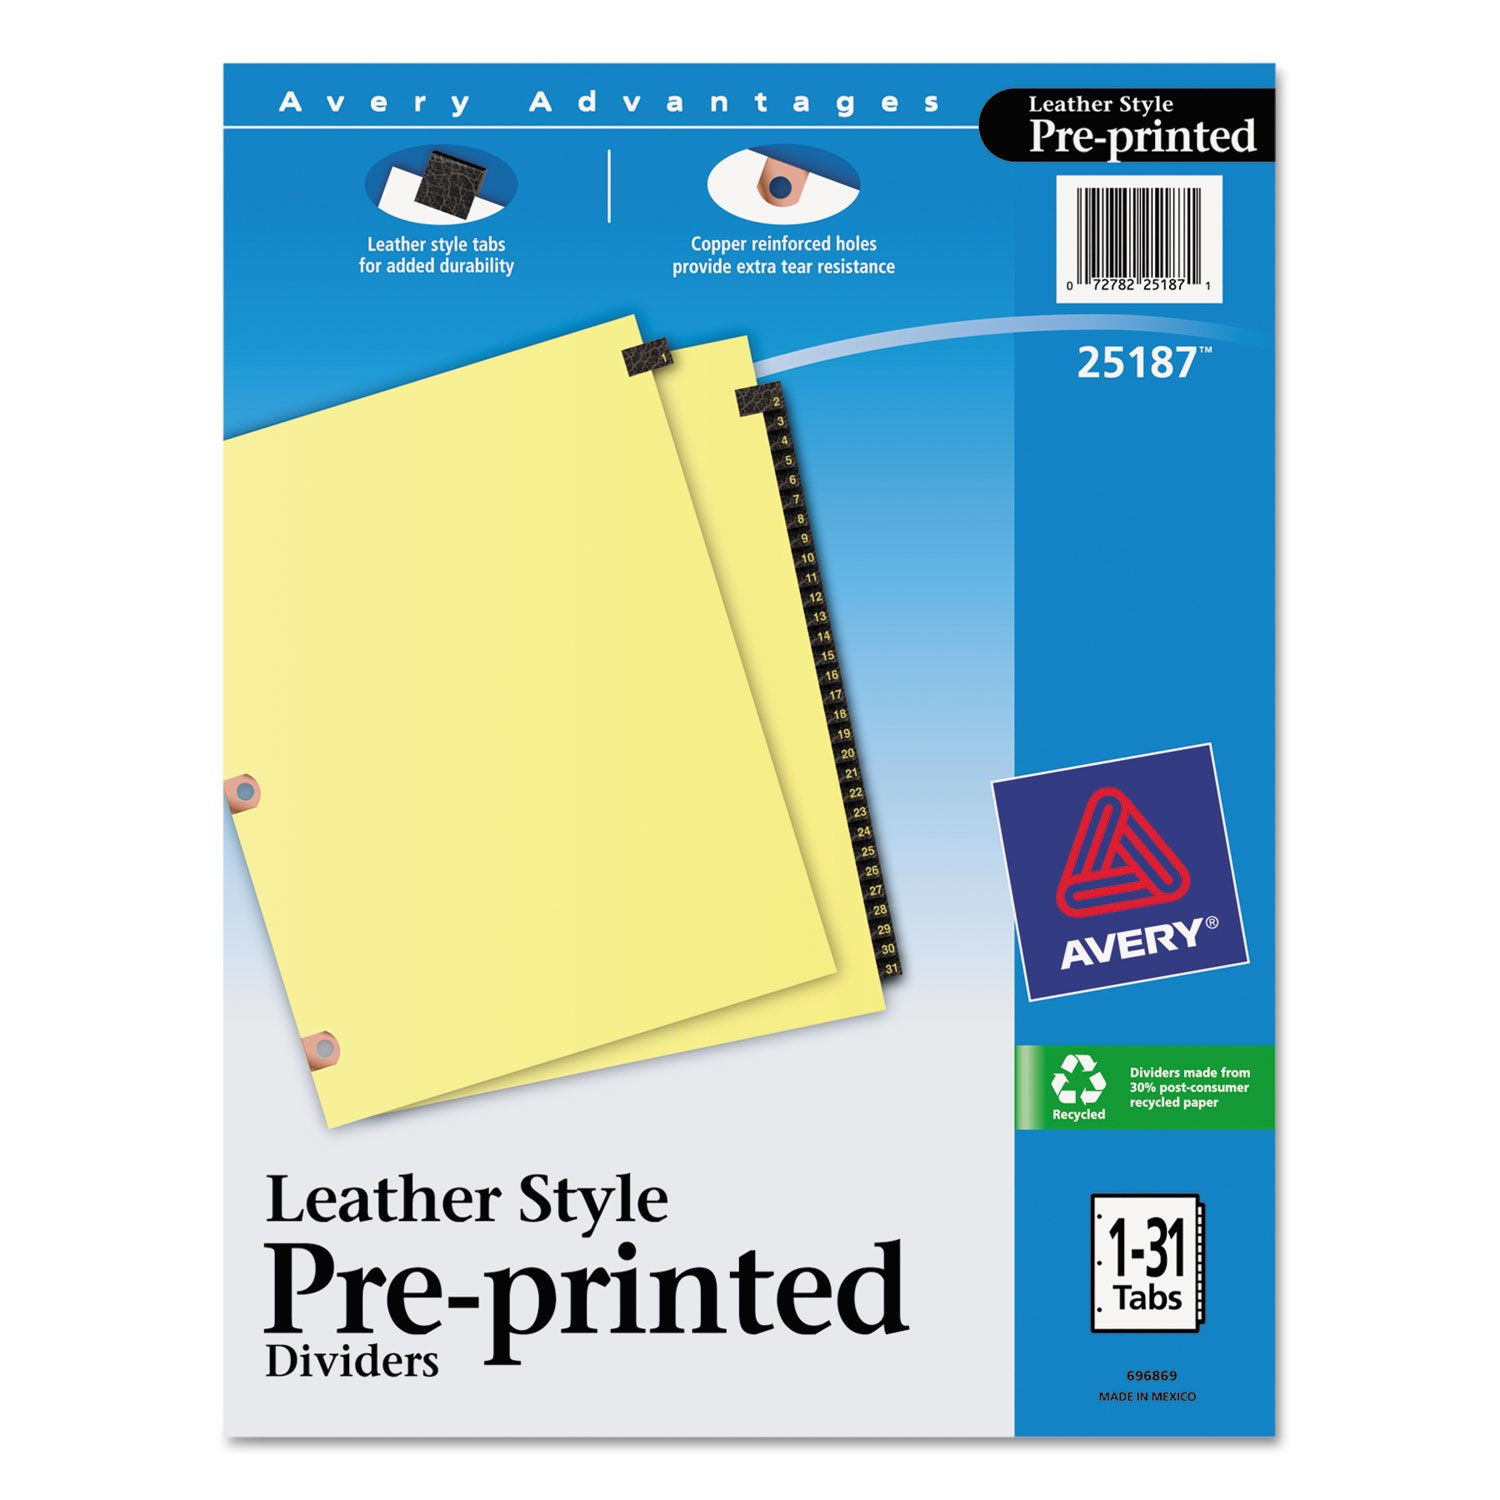 Avery 25187 Black Leather Tab Dividers, 1-31, 31 Tabs, 8-1/2'x11', Buff 8-1/2x11 AVERY-DENNISON-KNM